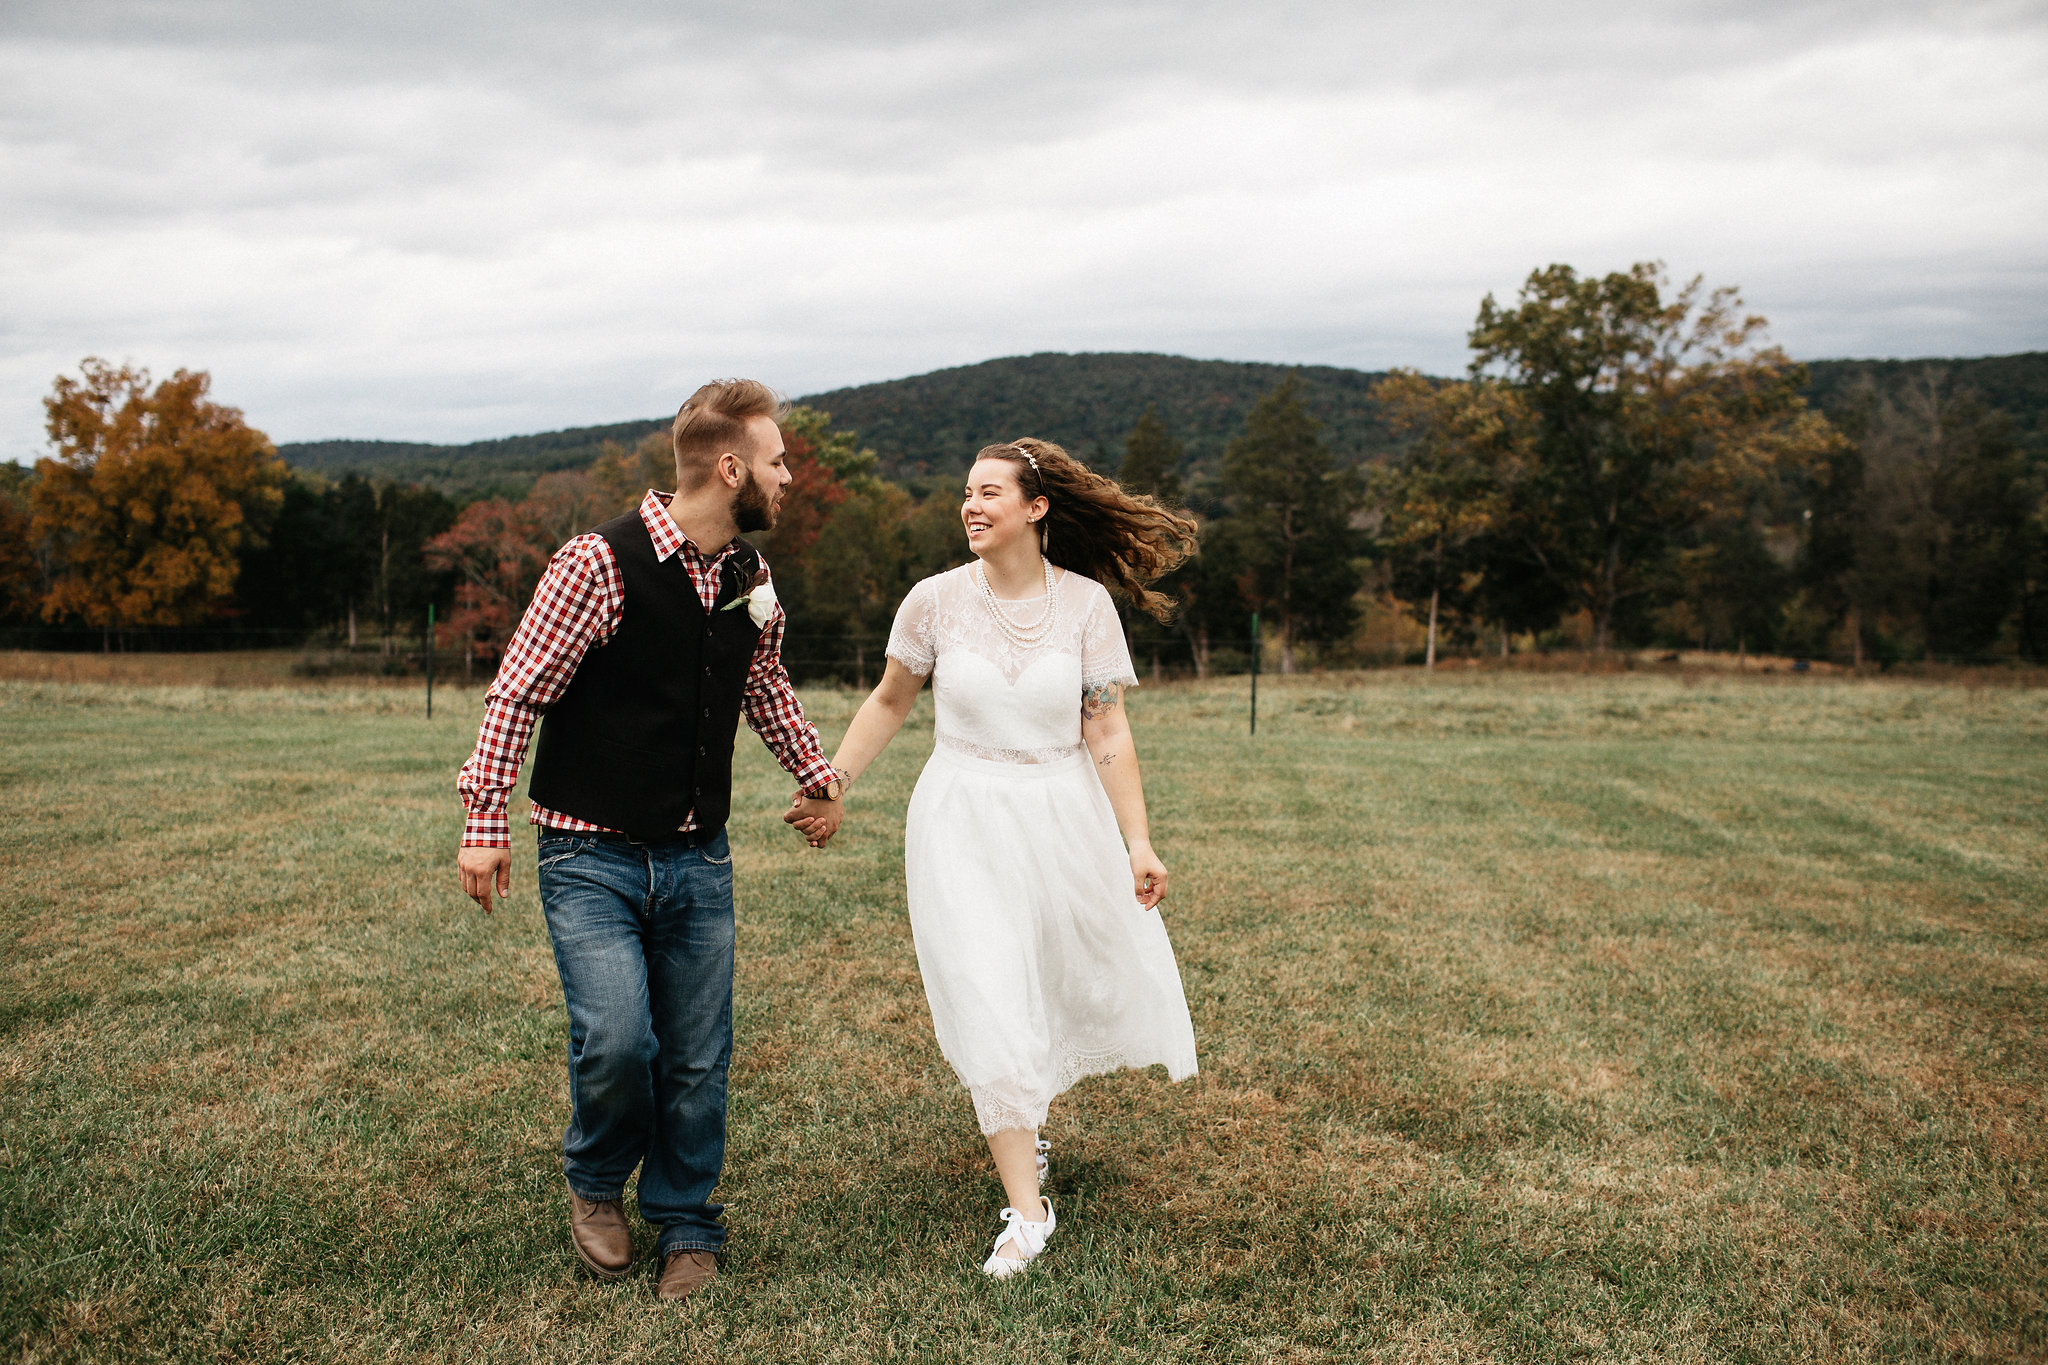 Caitlin&CodyMarried2017-11-03at19.19.40PM88.jpg